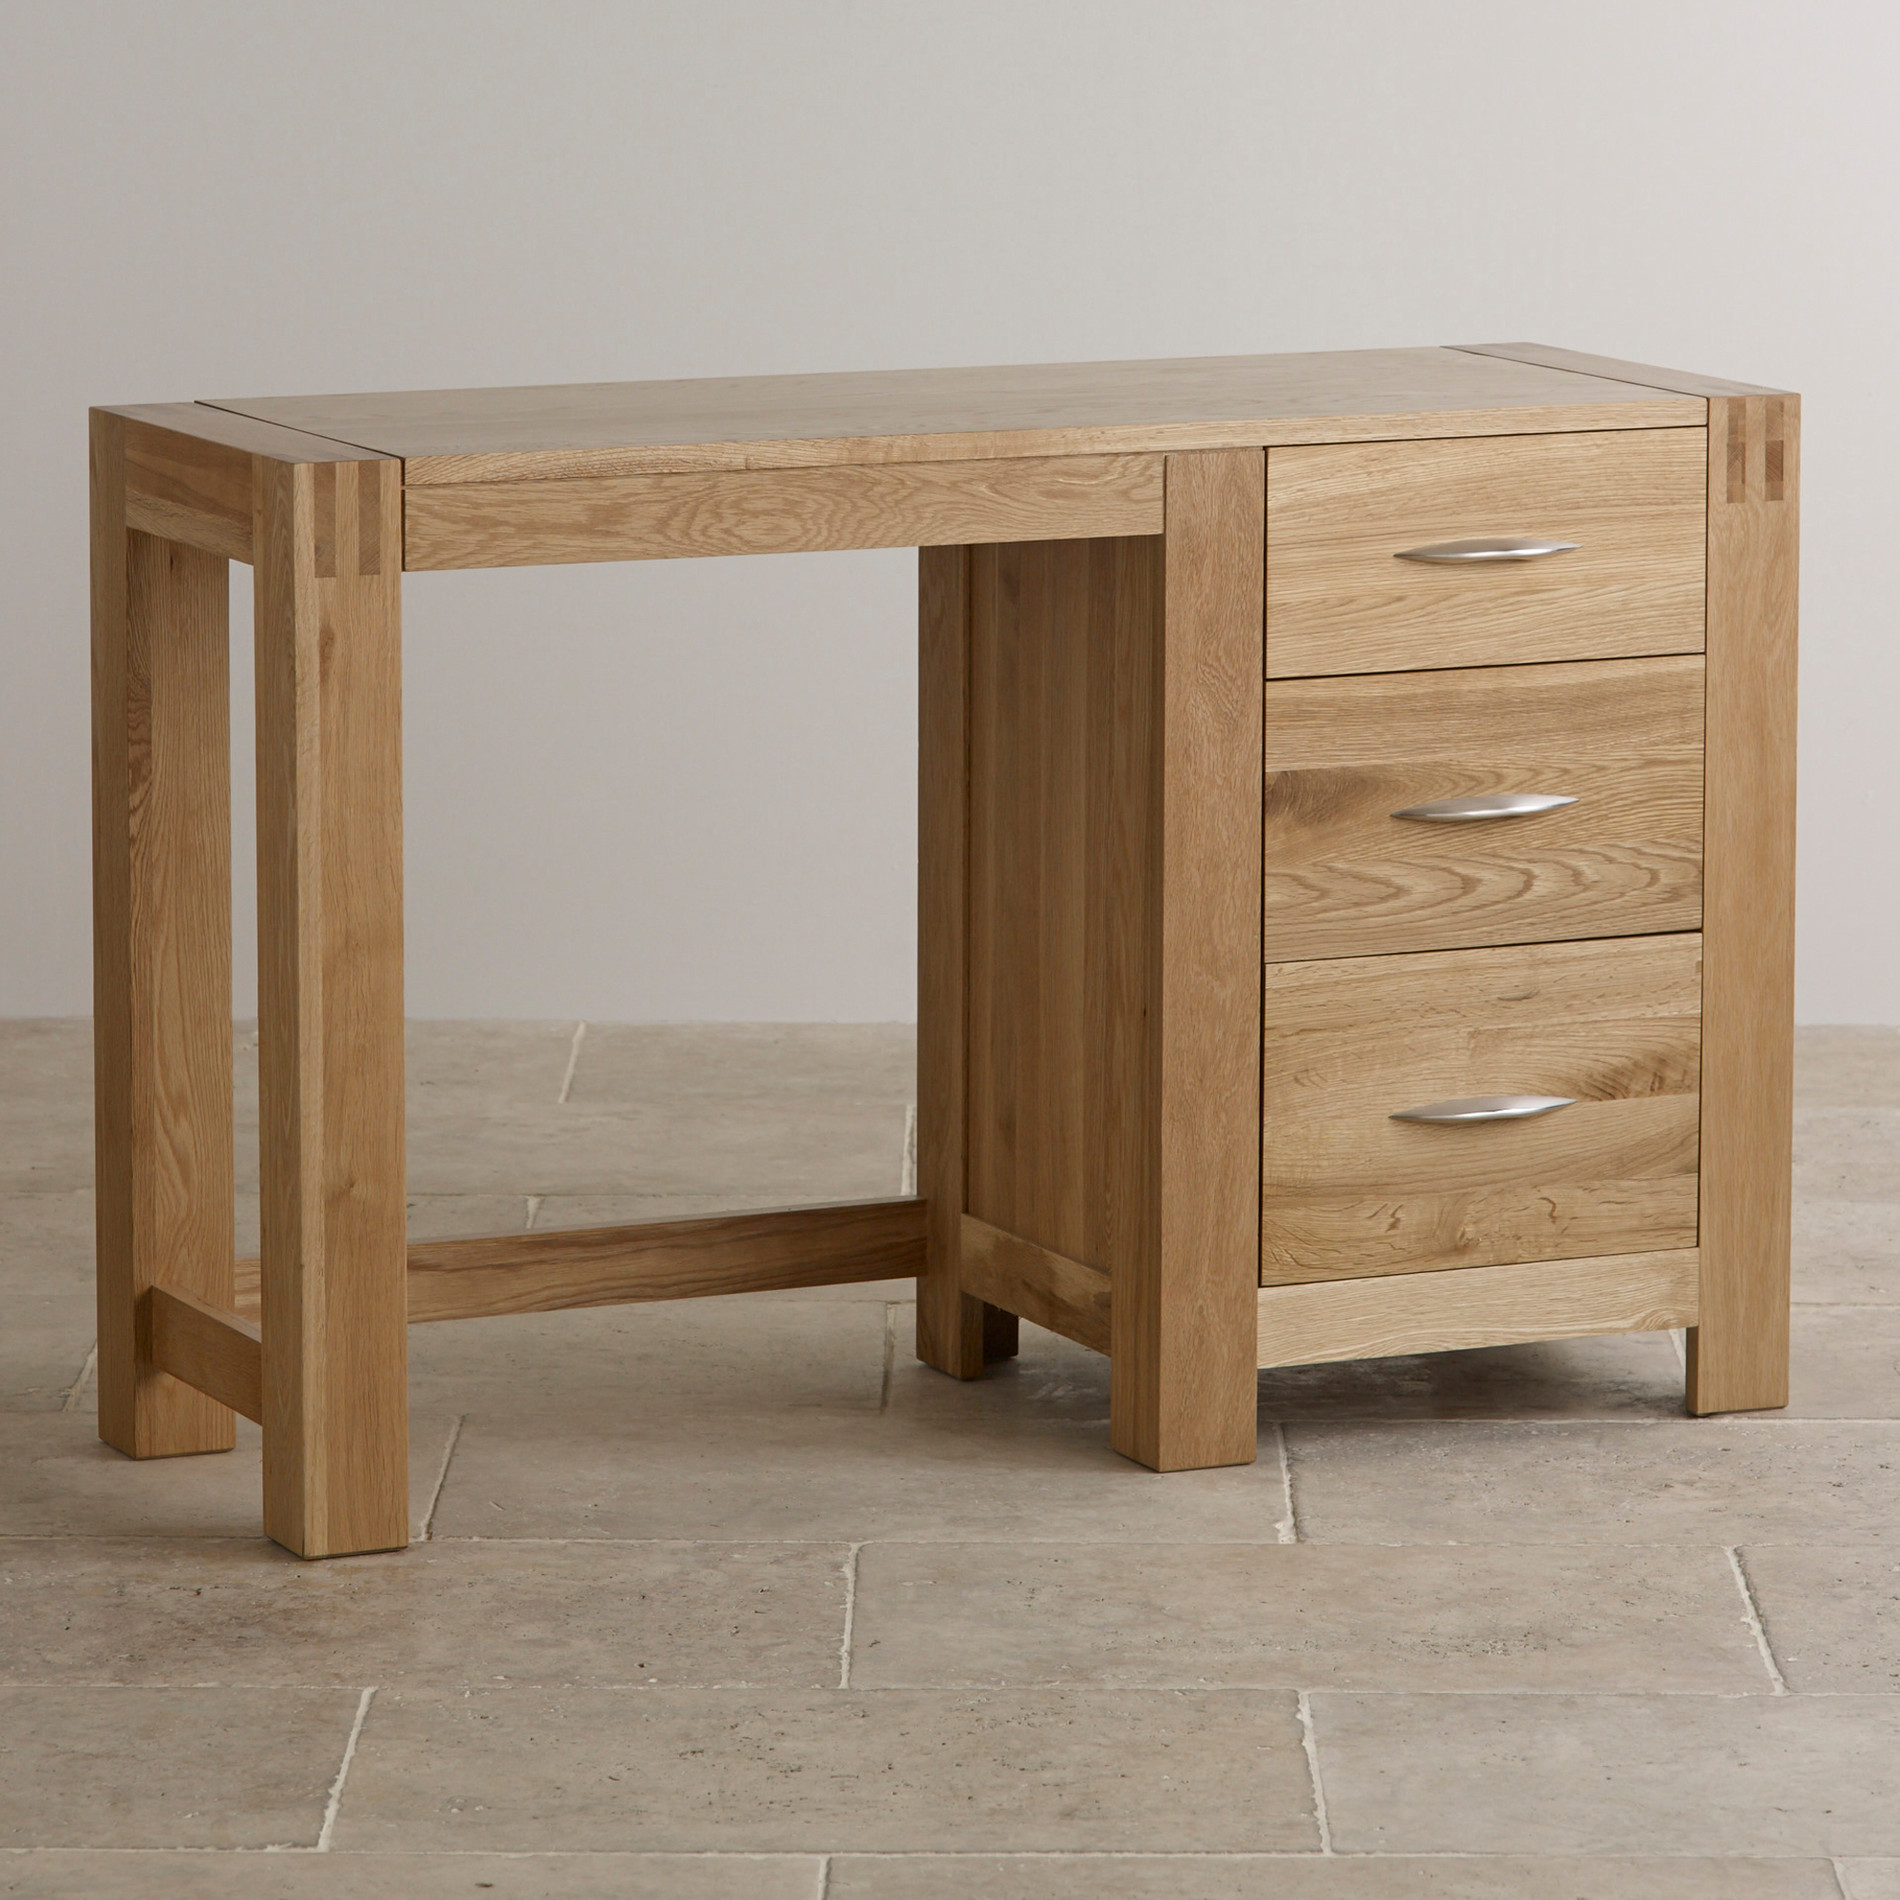 Alto Dressing Table in Natural Solid Oak Oak Furniture Land : alto dressing table 55c38903610eb from www.oakfurnitureland.co.uk size 1900 x 1900 jpeg 608kB